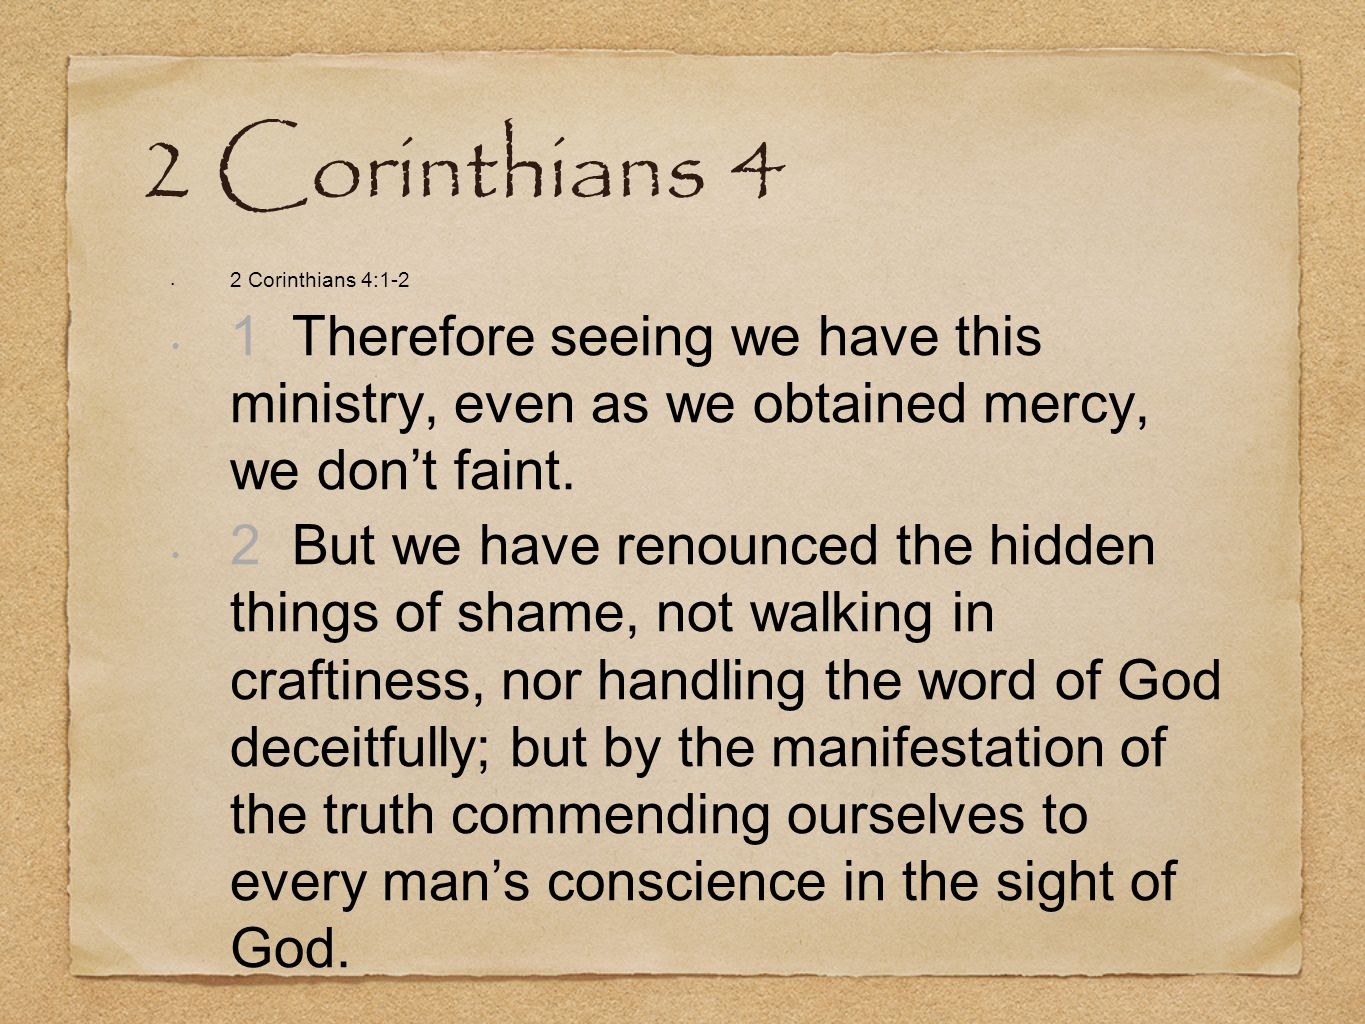 2 Corinthians 4 2 Corinthians 4:1-2. 1 Therefore seeing we have this ministry, even as we obtained mercy, we don't faint.